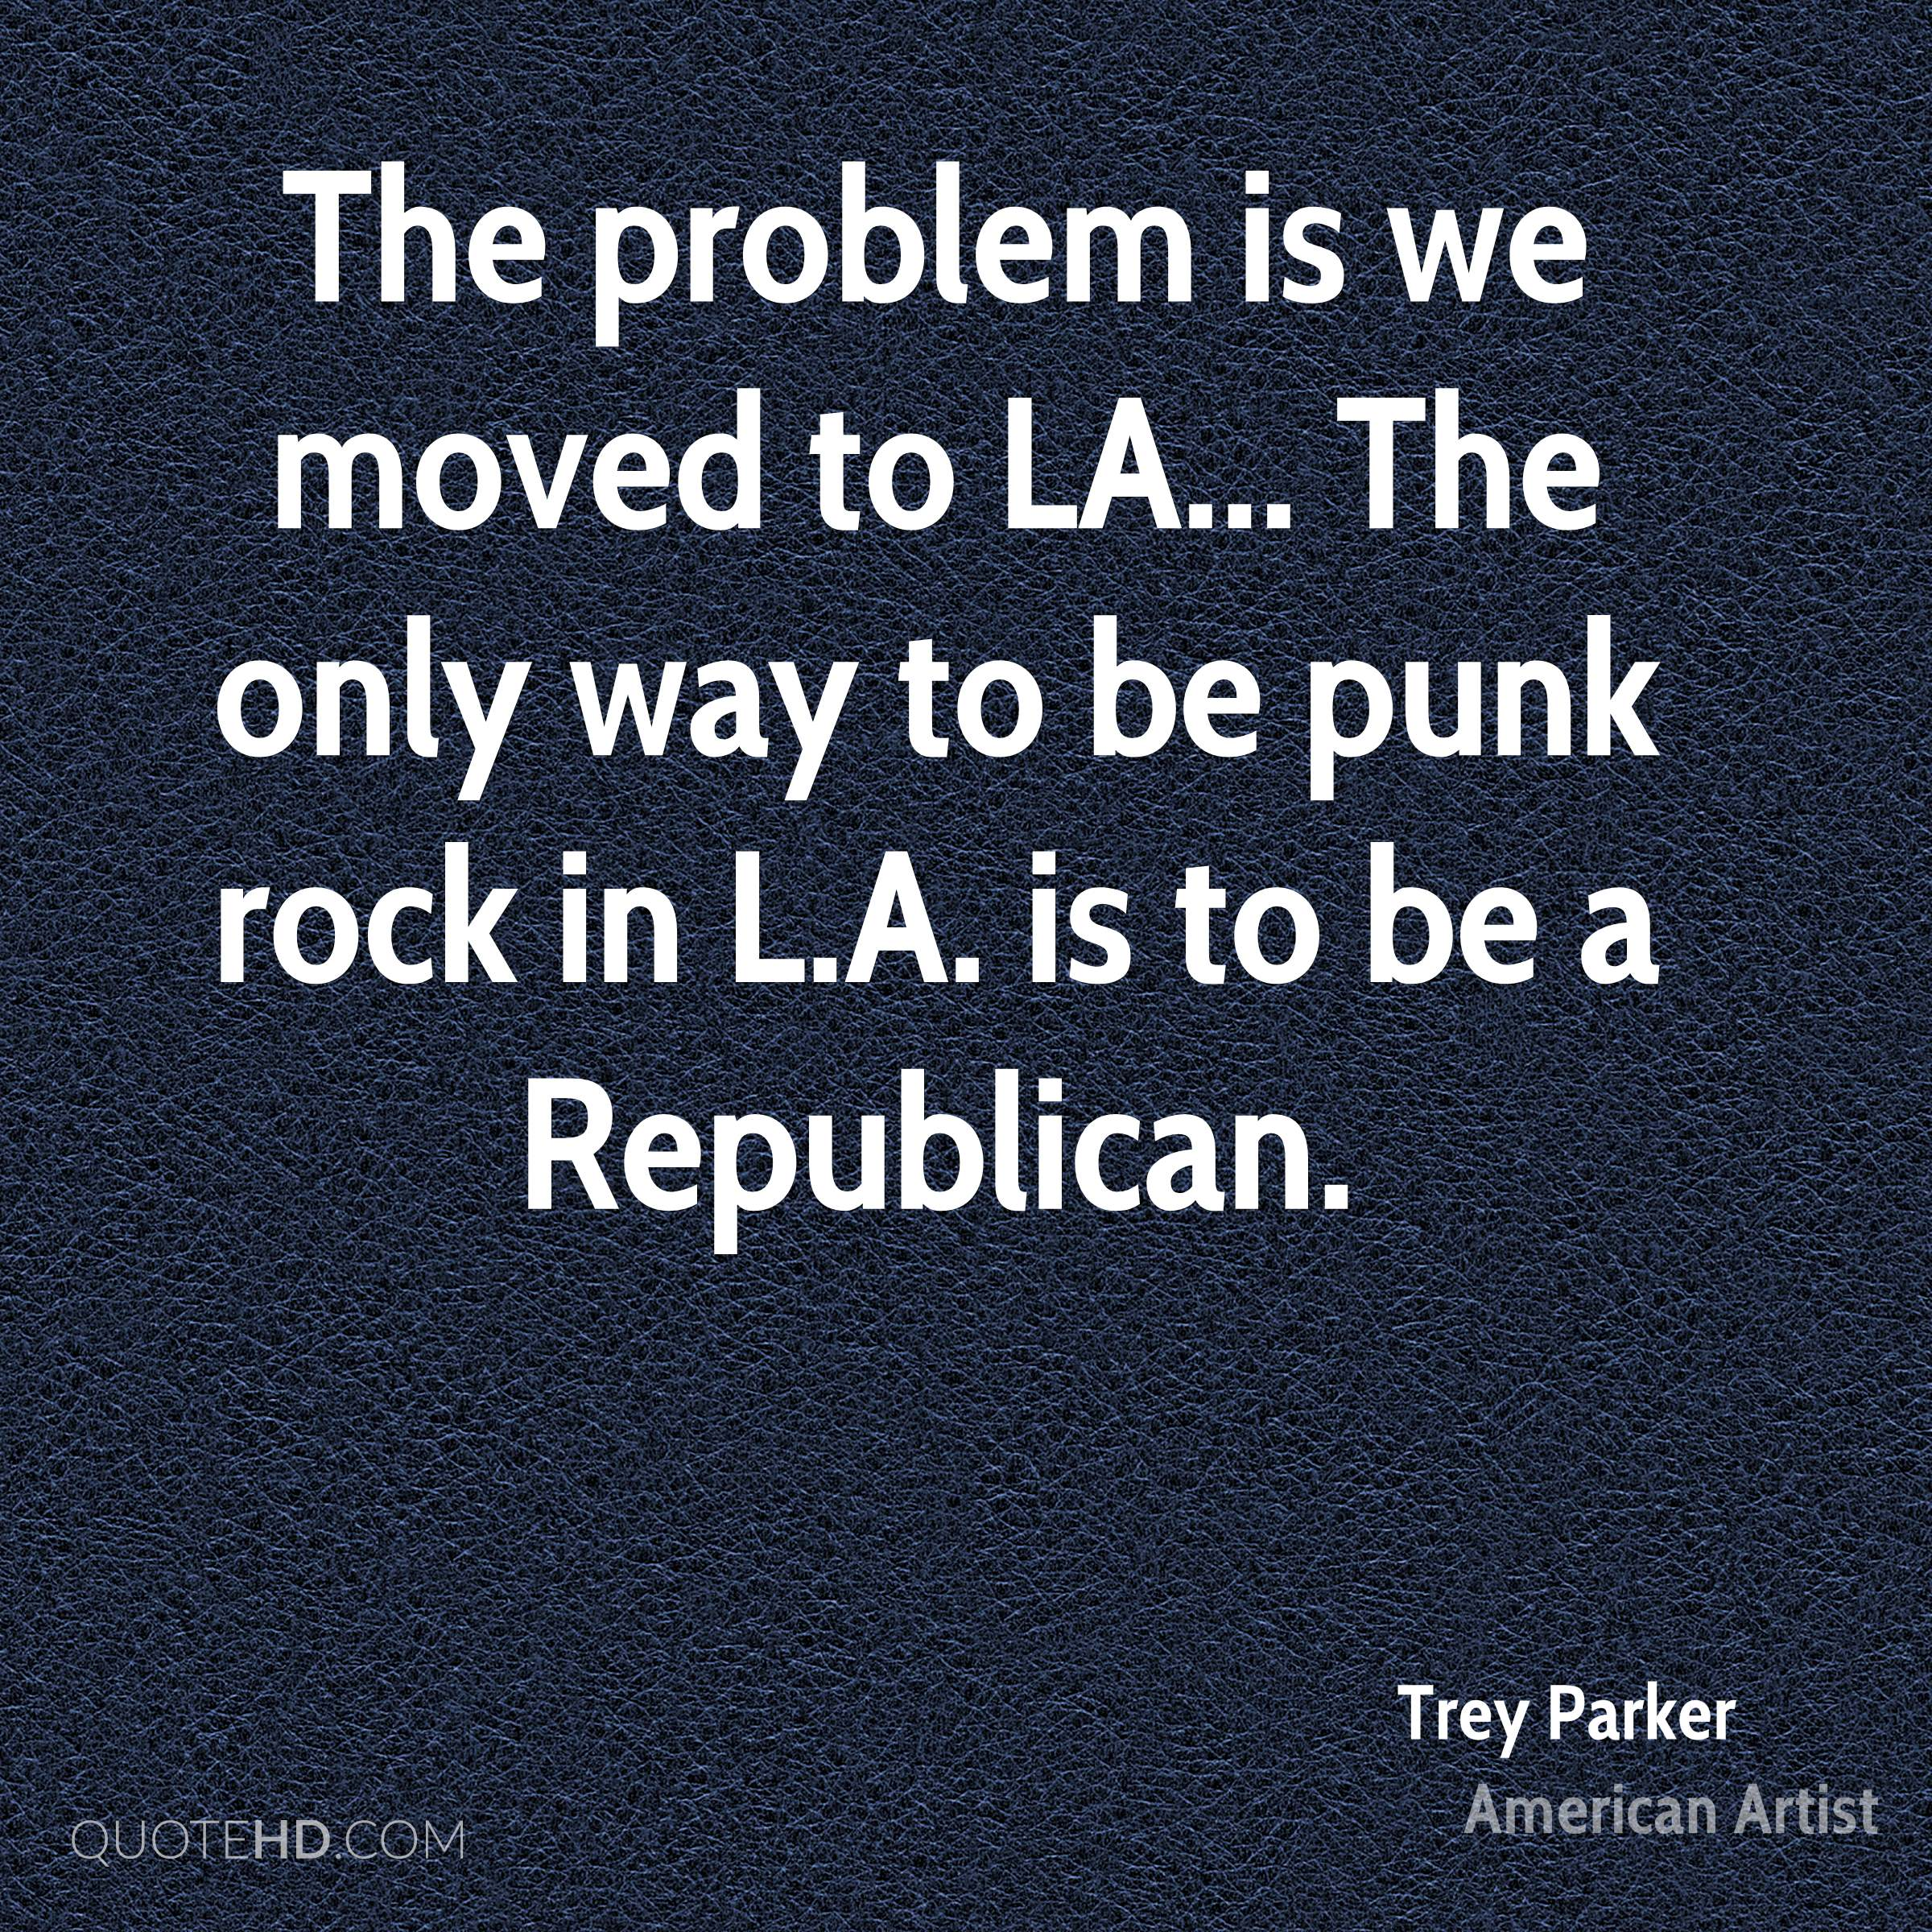 The problem is we moved to LA... The only way to be punk rock in L.A. is to be a Republican.